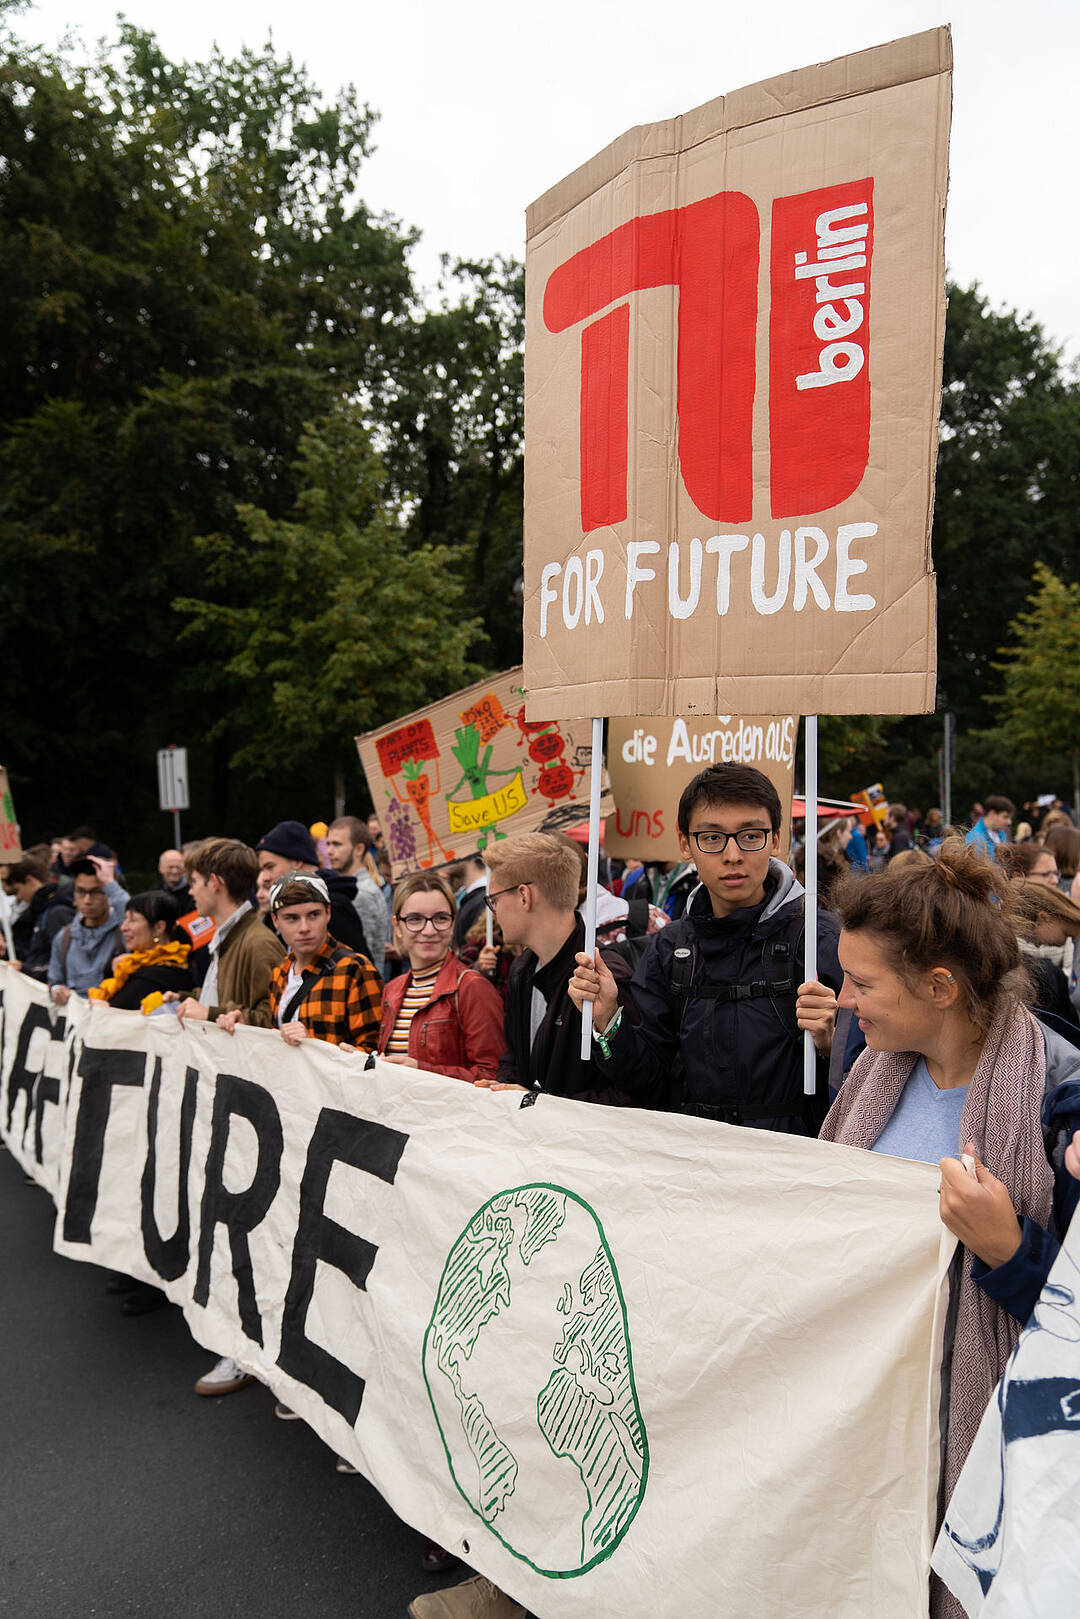 Fridays for Future Demo 20.09.2019, TU FOR FUTURE